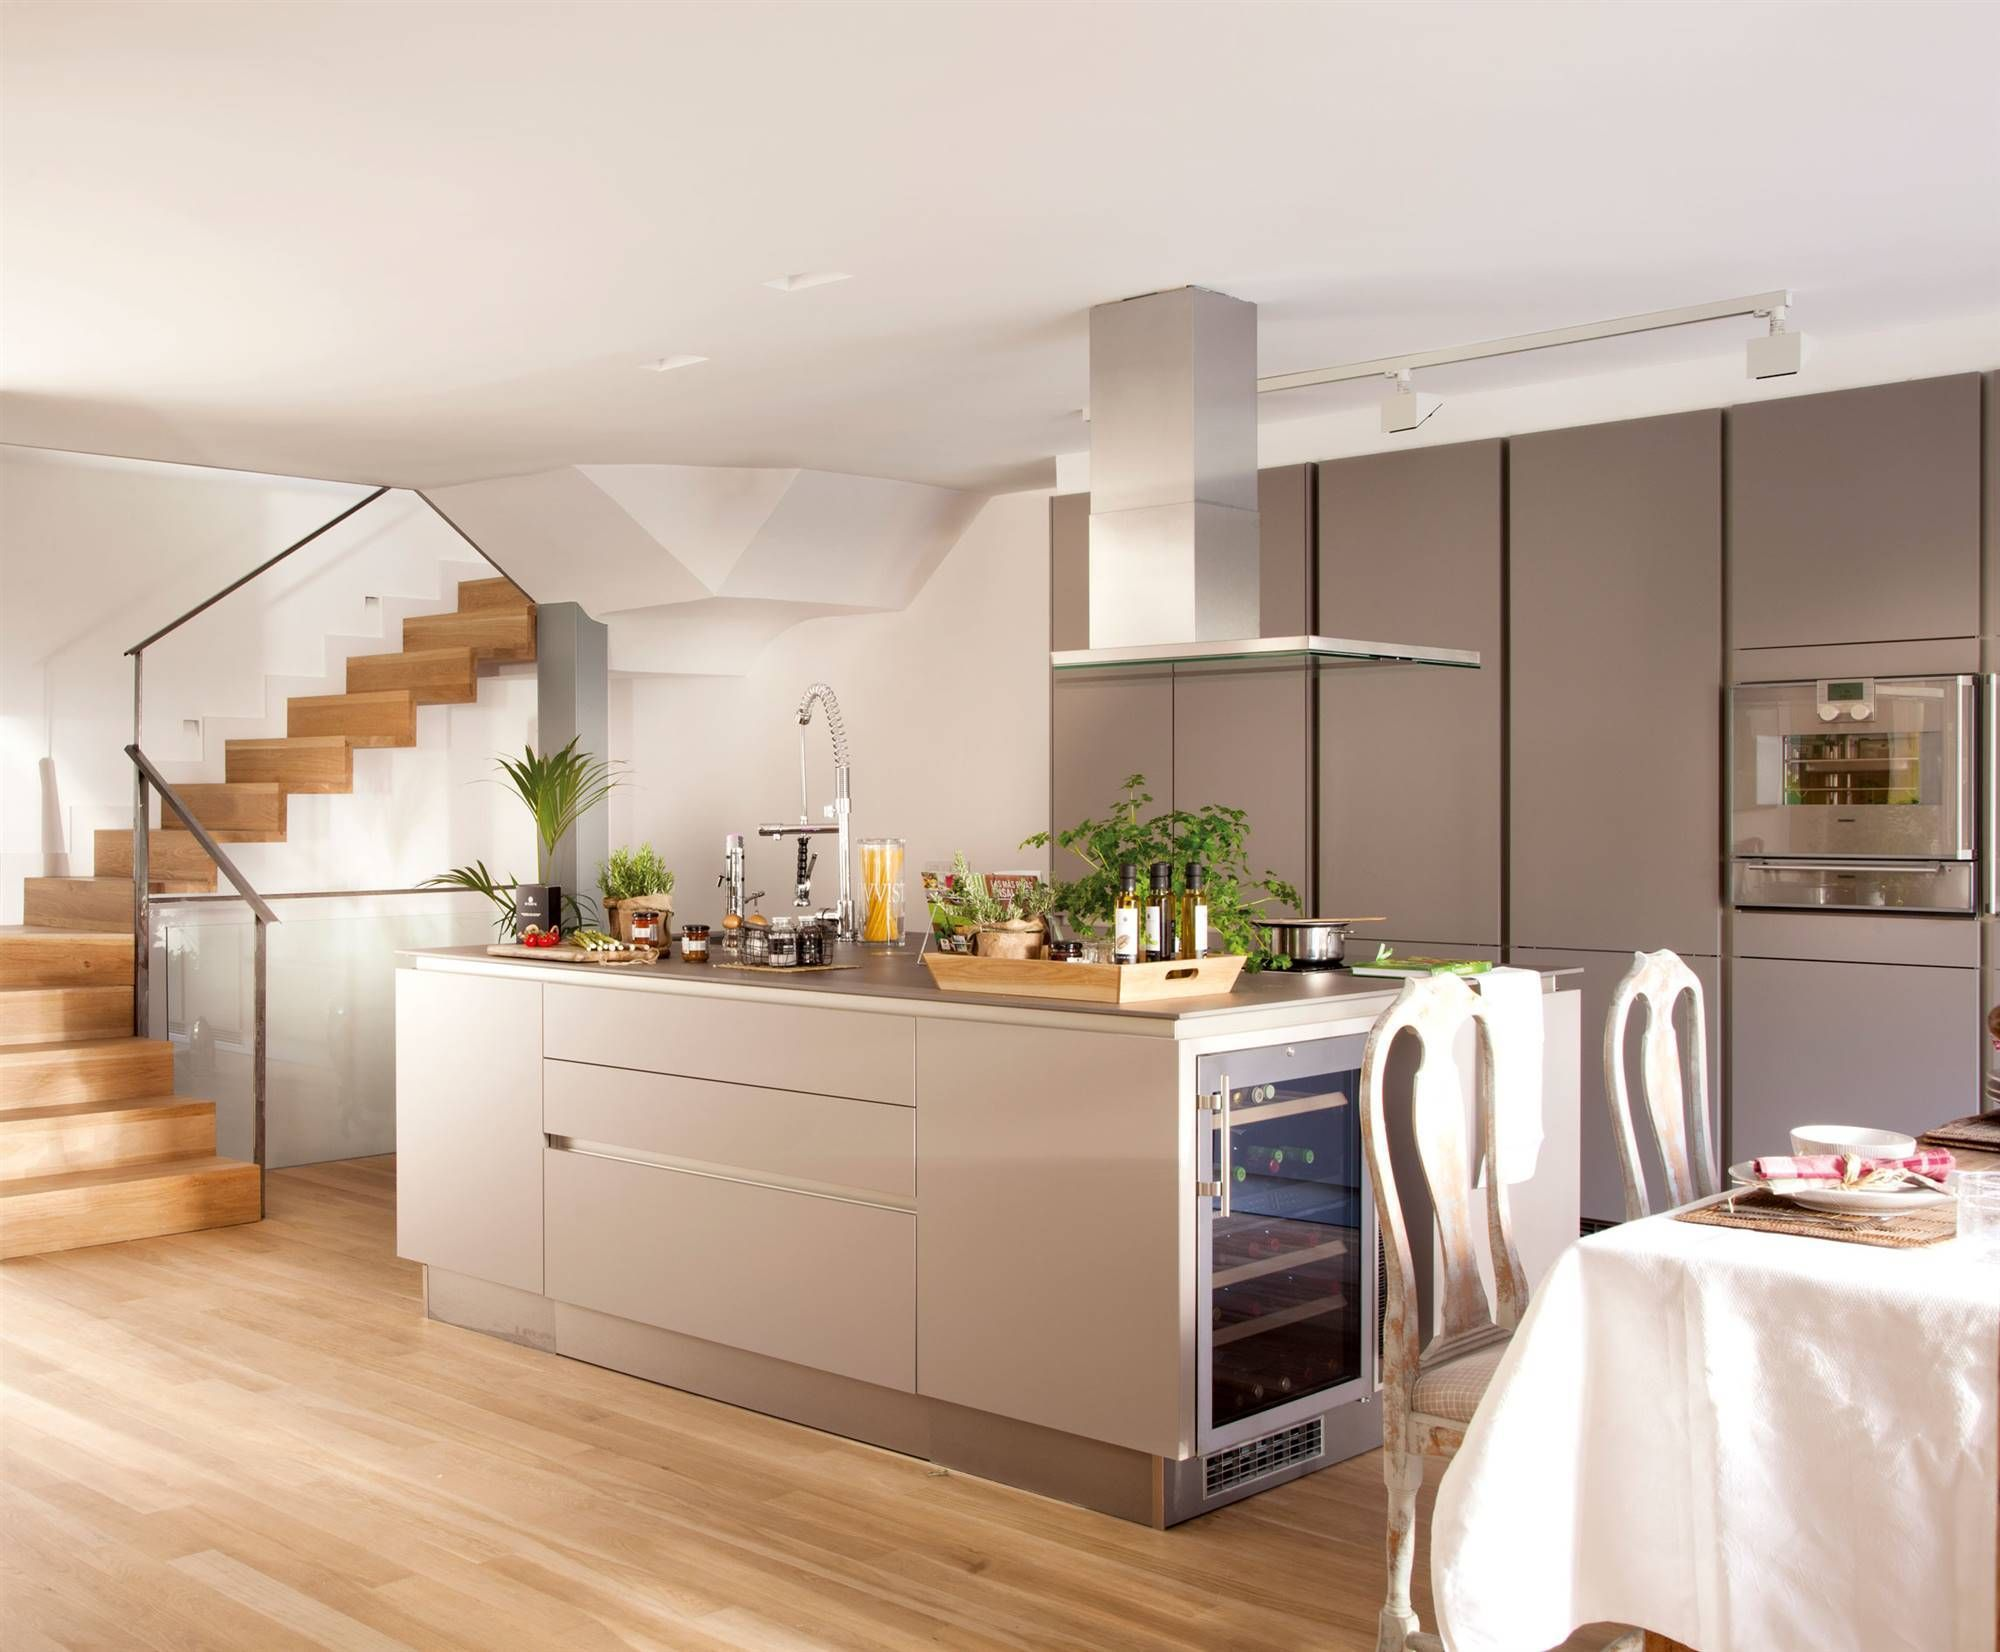 Image result for MOLE TONE AND SILK TEXTURE kitchen